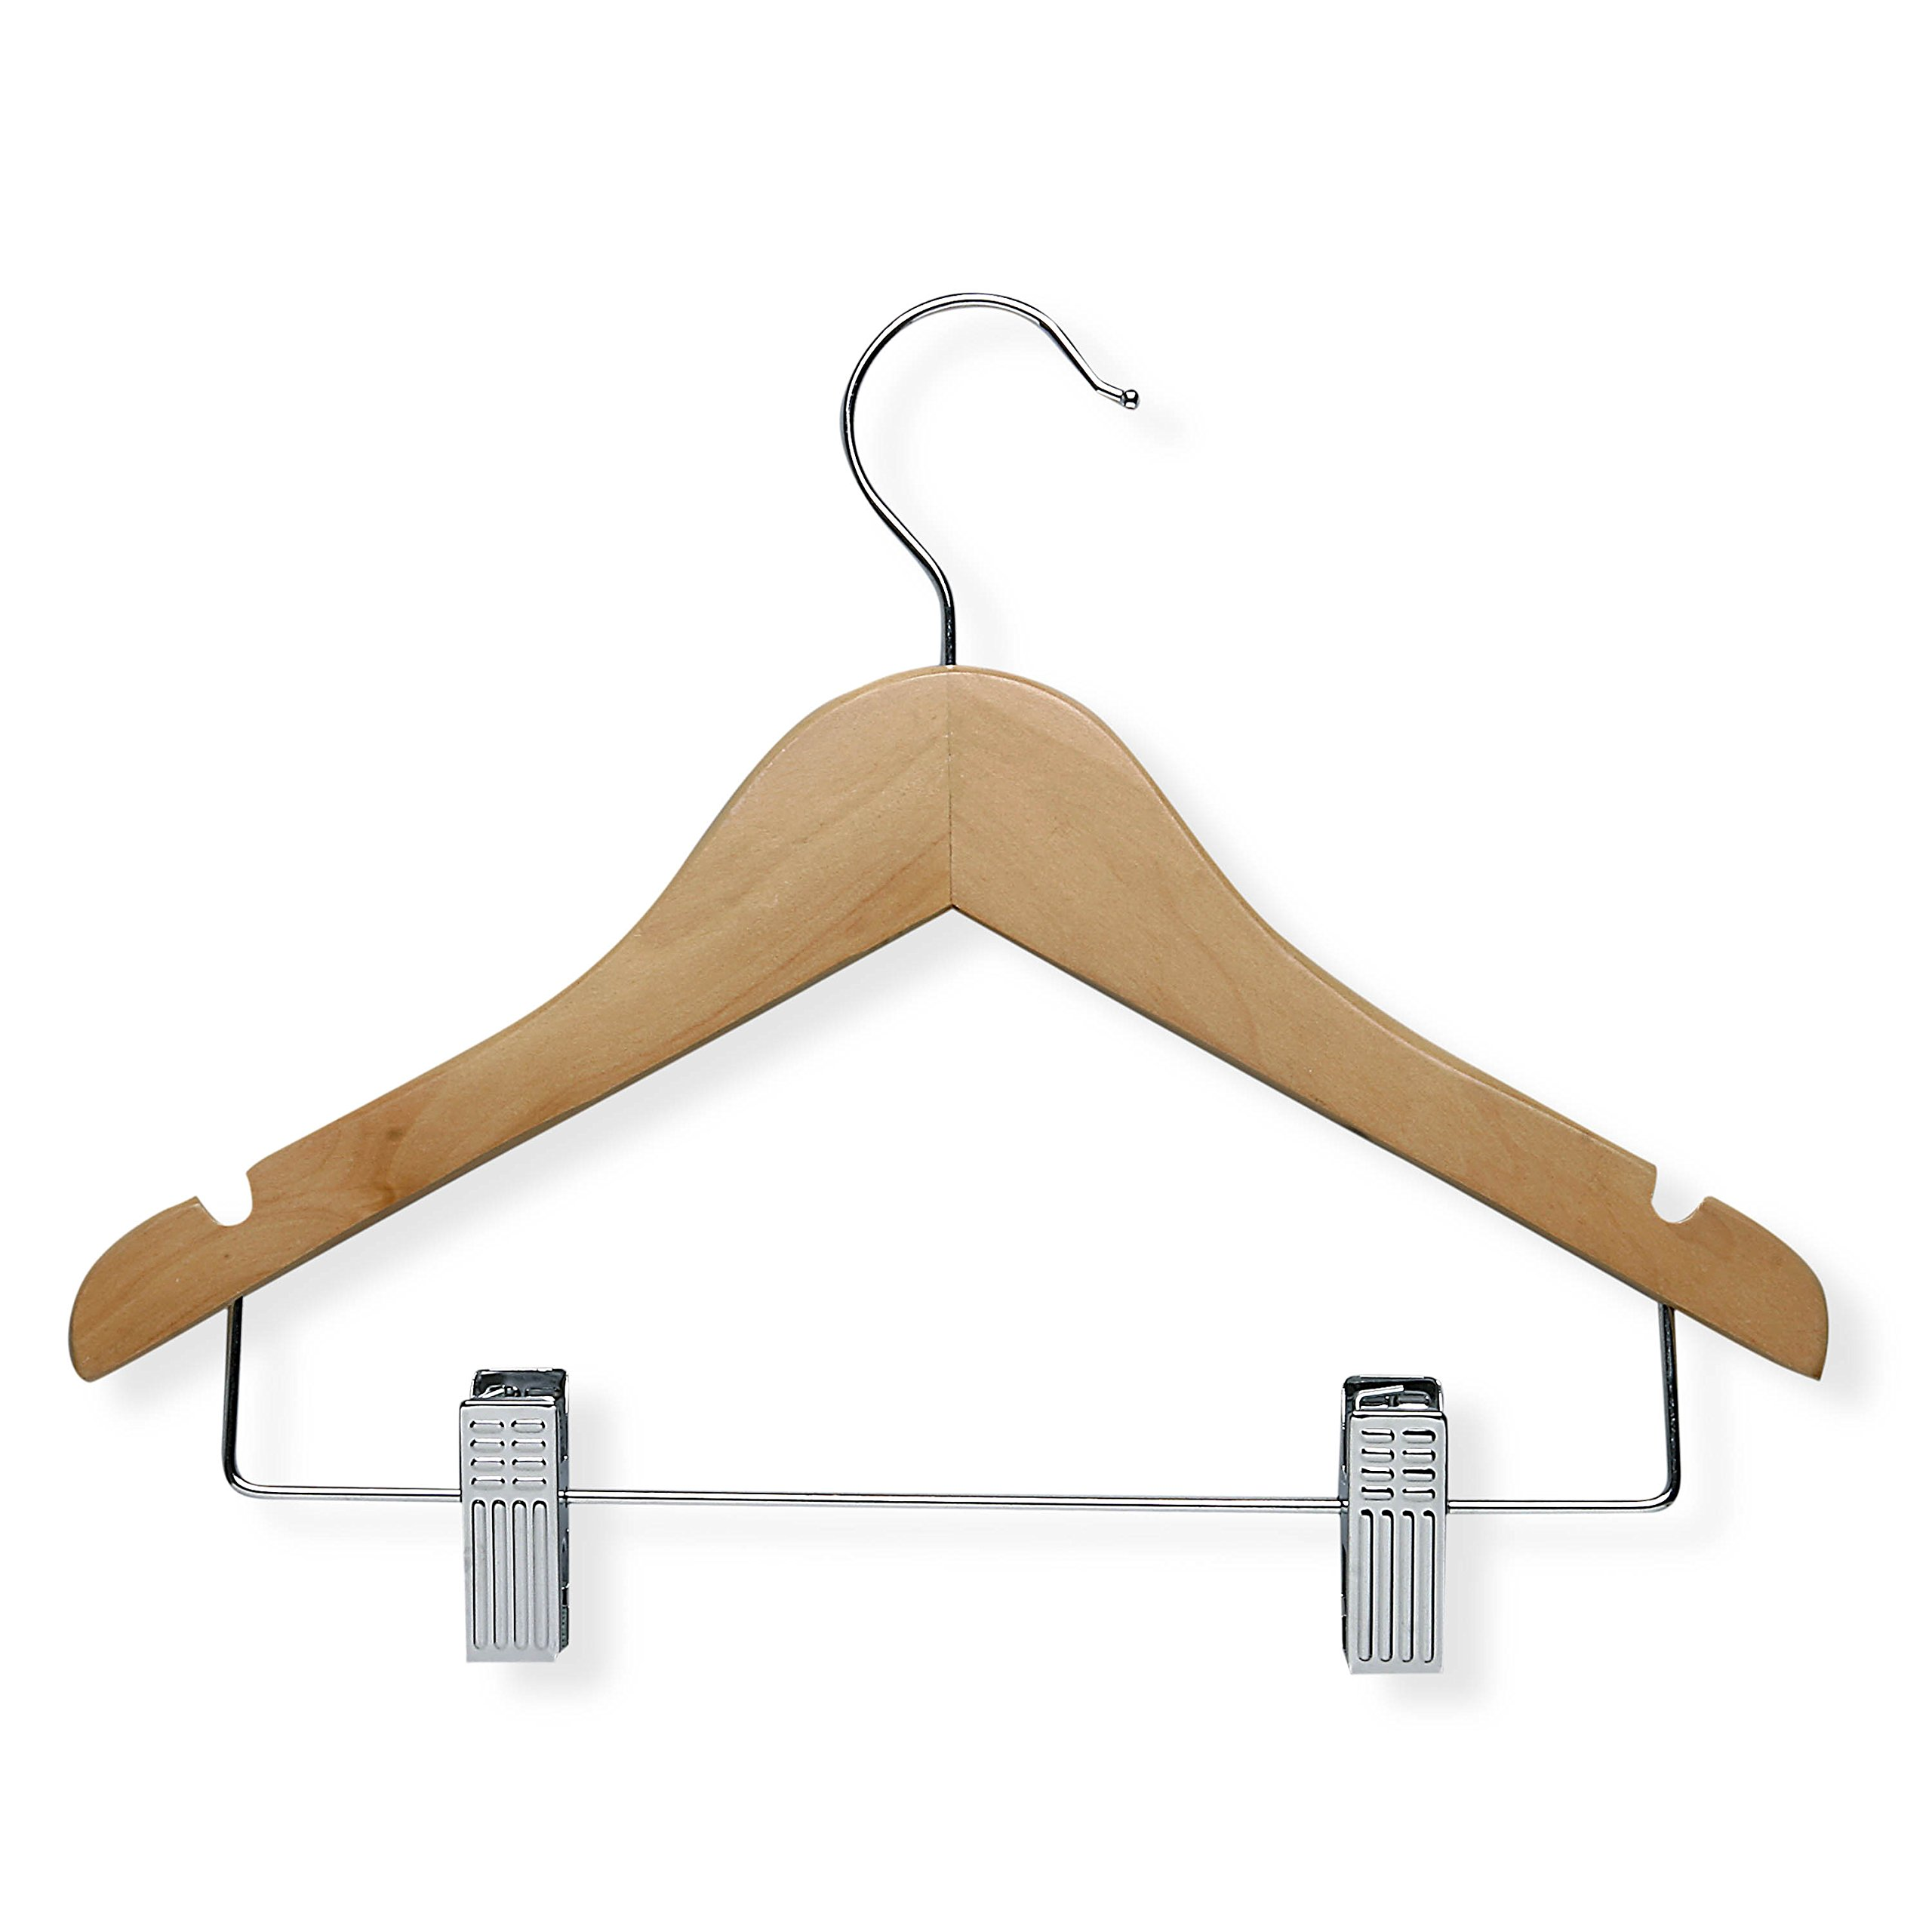 Honey-Can-Do HNG-01225 Kid's Wooden Shirt and Pants Hanger with Clips, 5-Pack, Maple